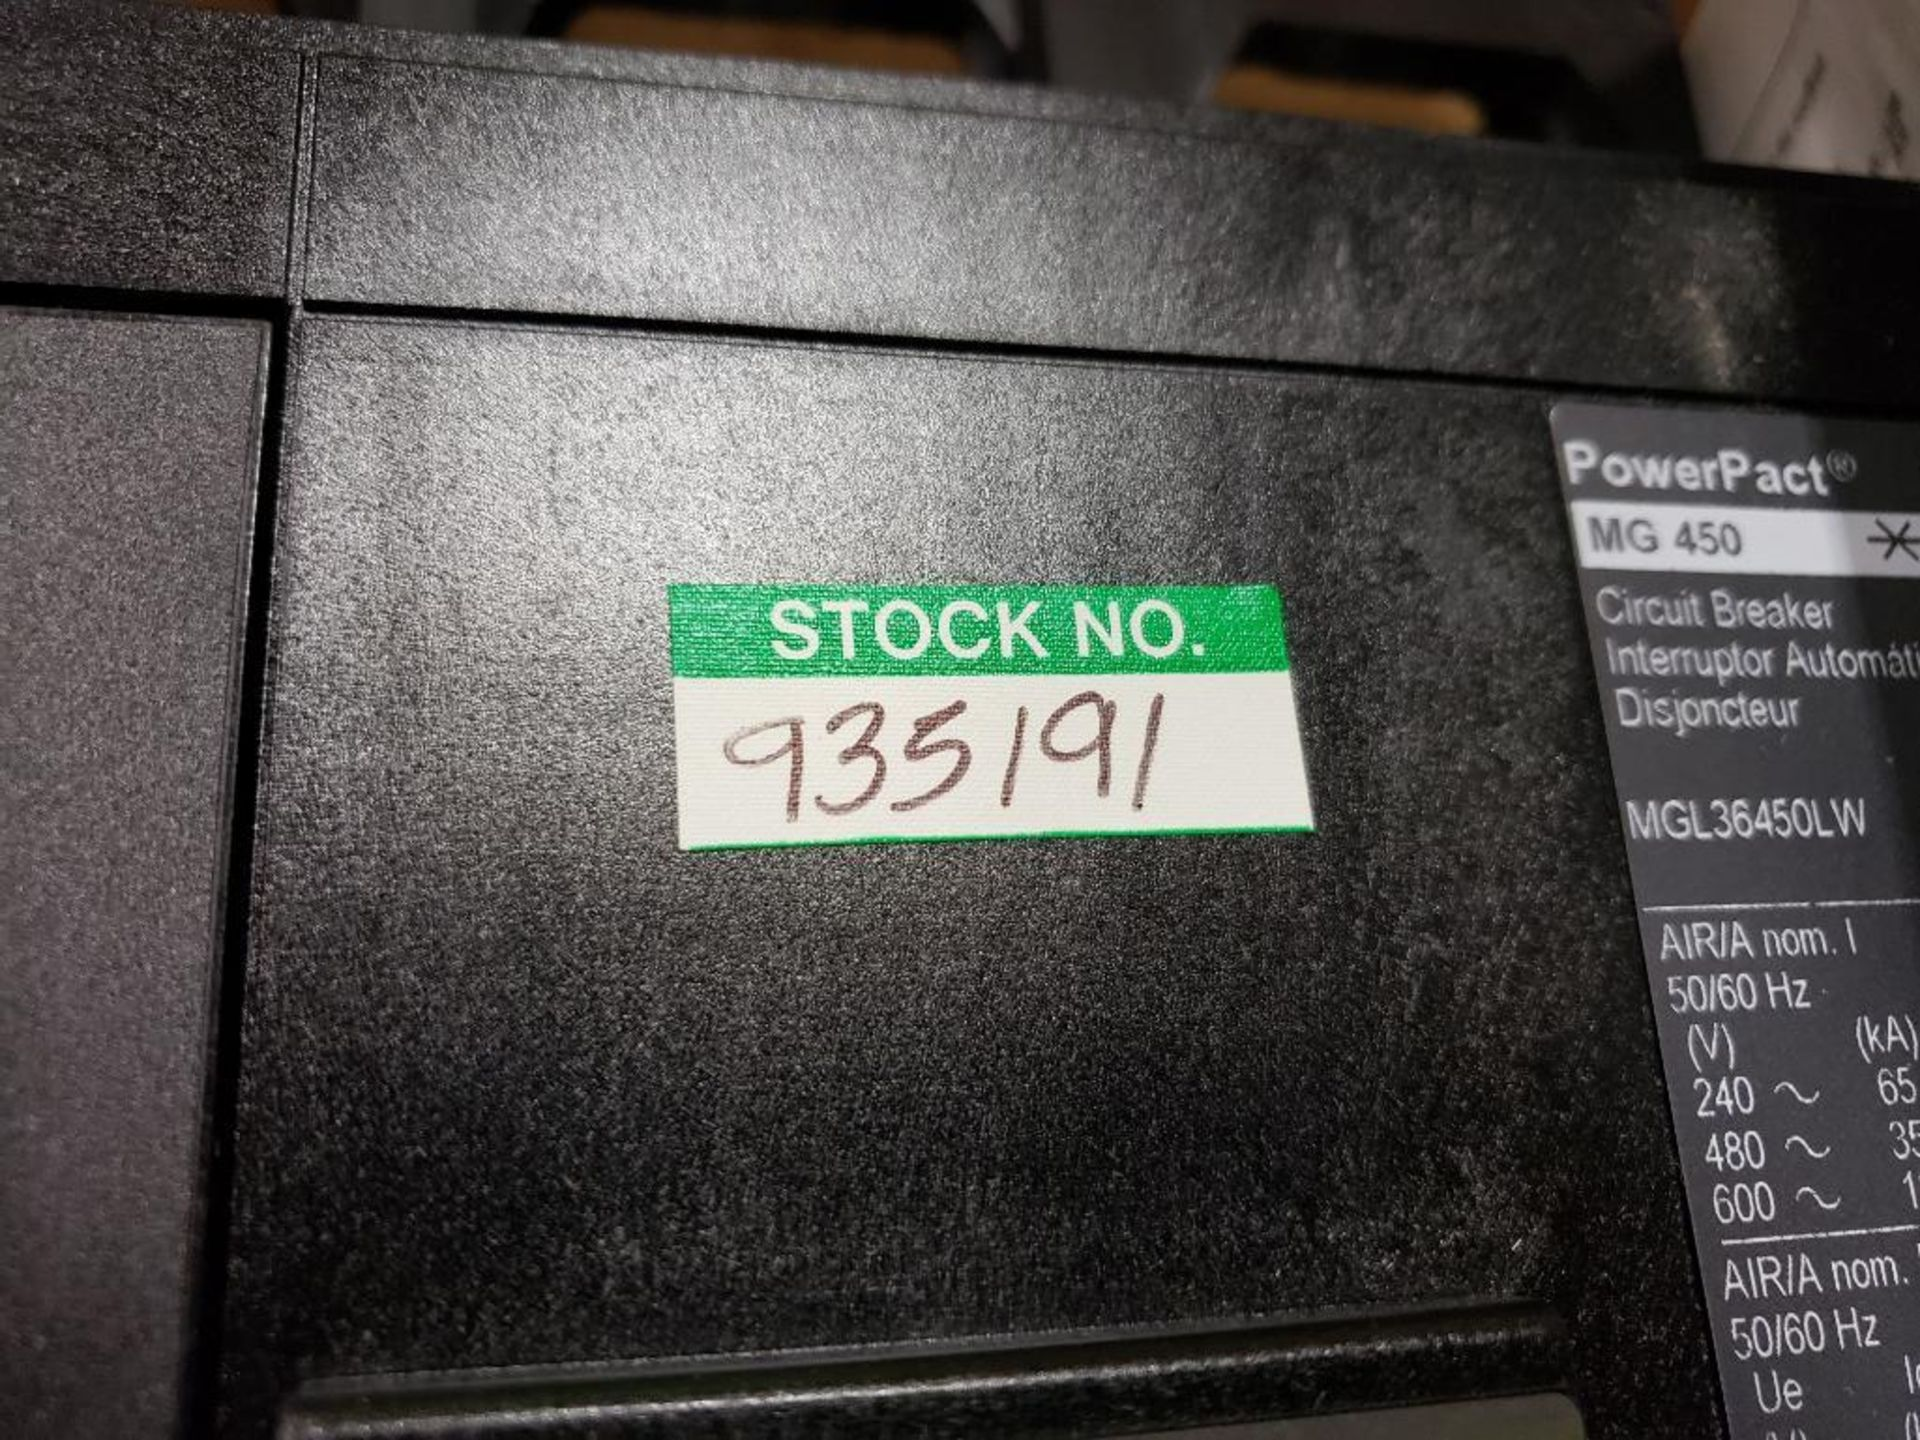 Square D PowerPact breaker. 450 amp 3 phase. Model MGL36450LW. New in box. - Image 4 of 4